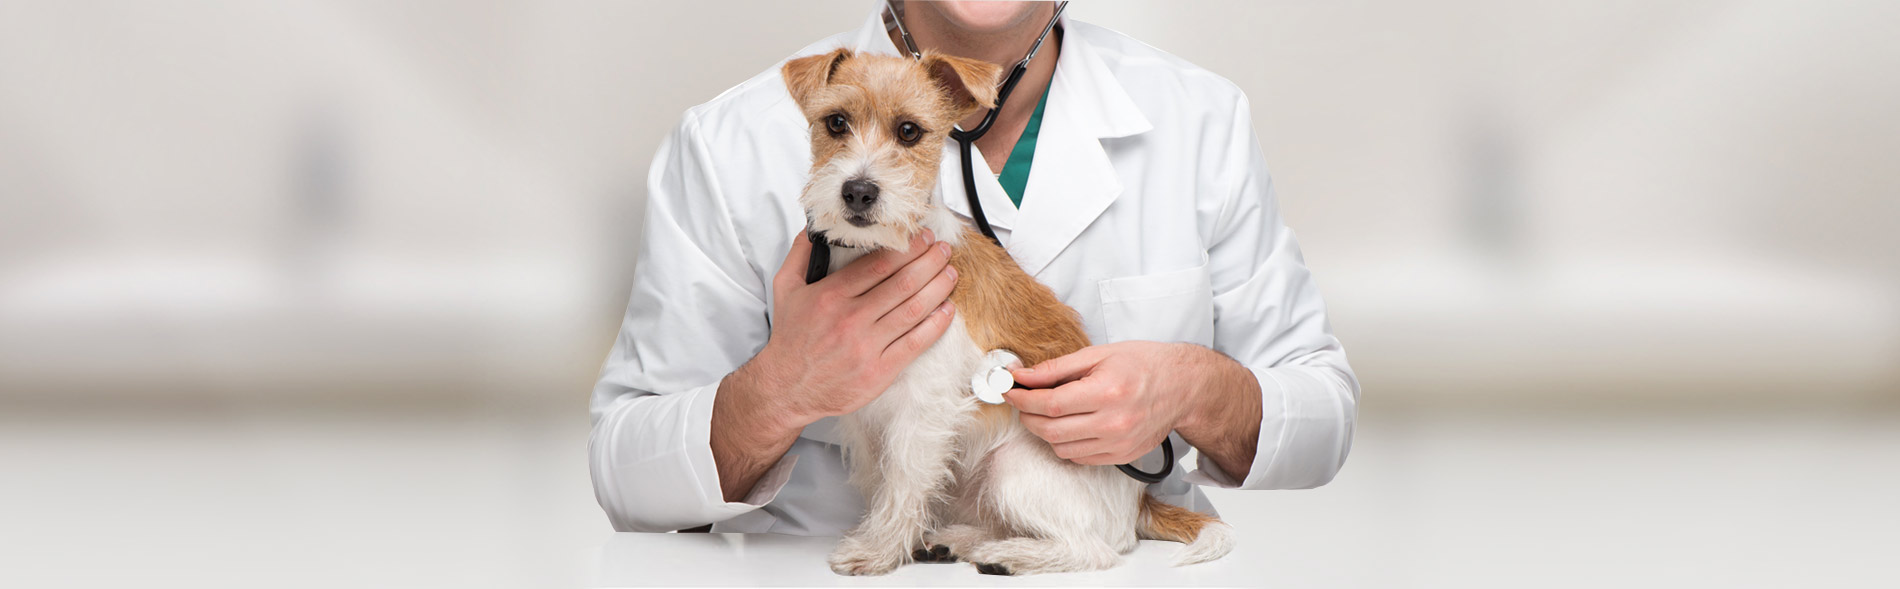 Veterinary Services Offered At Our Pleasant Valley Veterinary Clinic